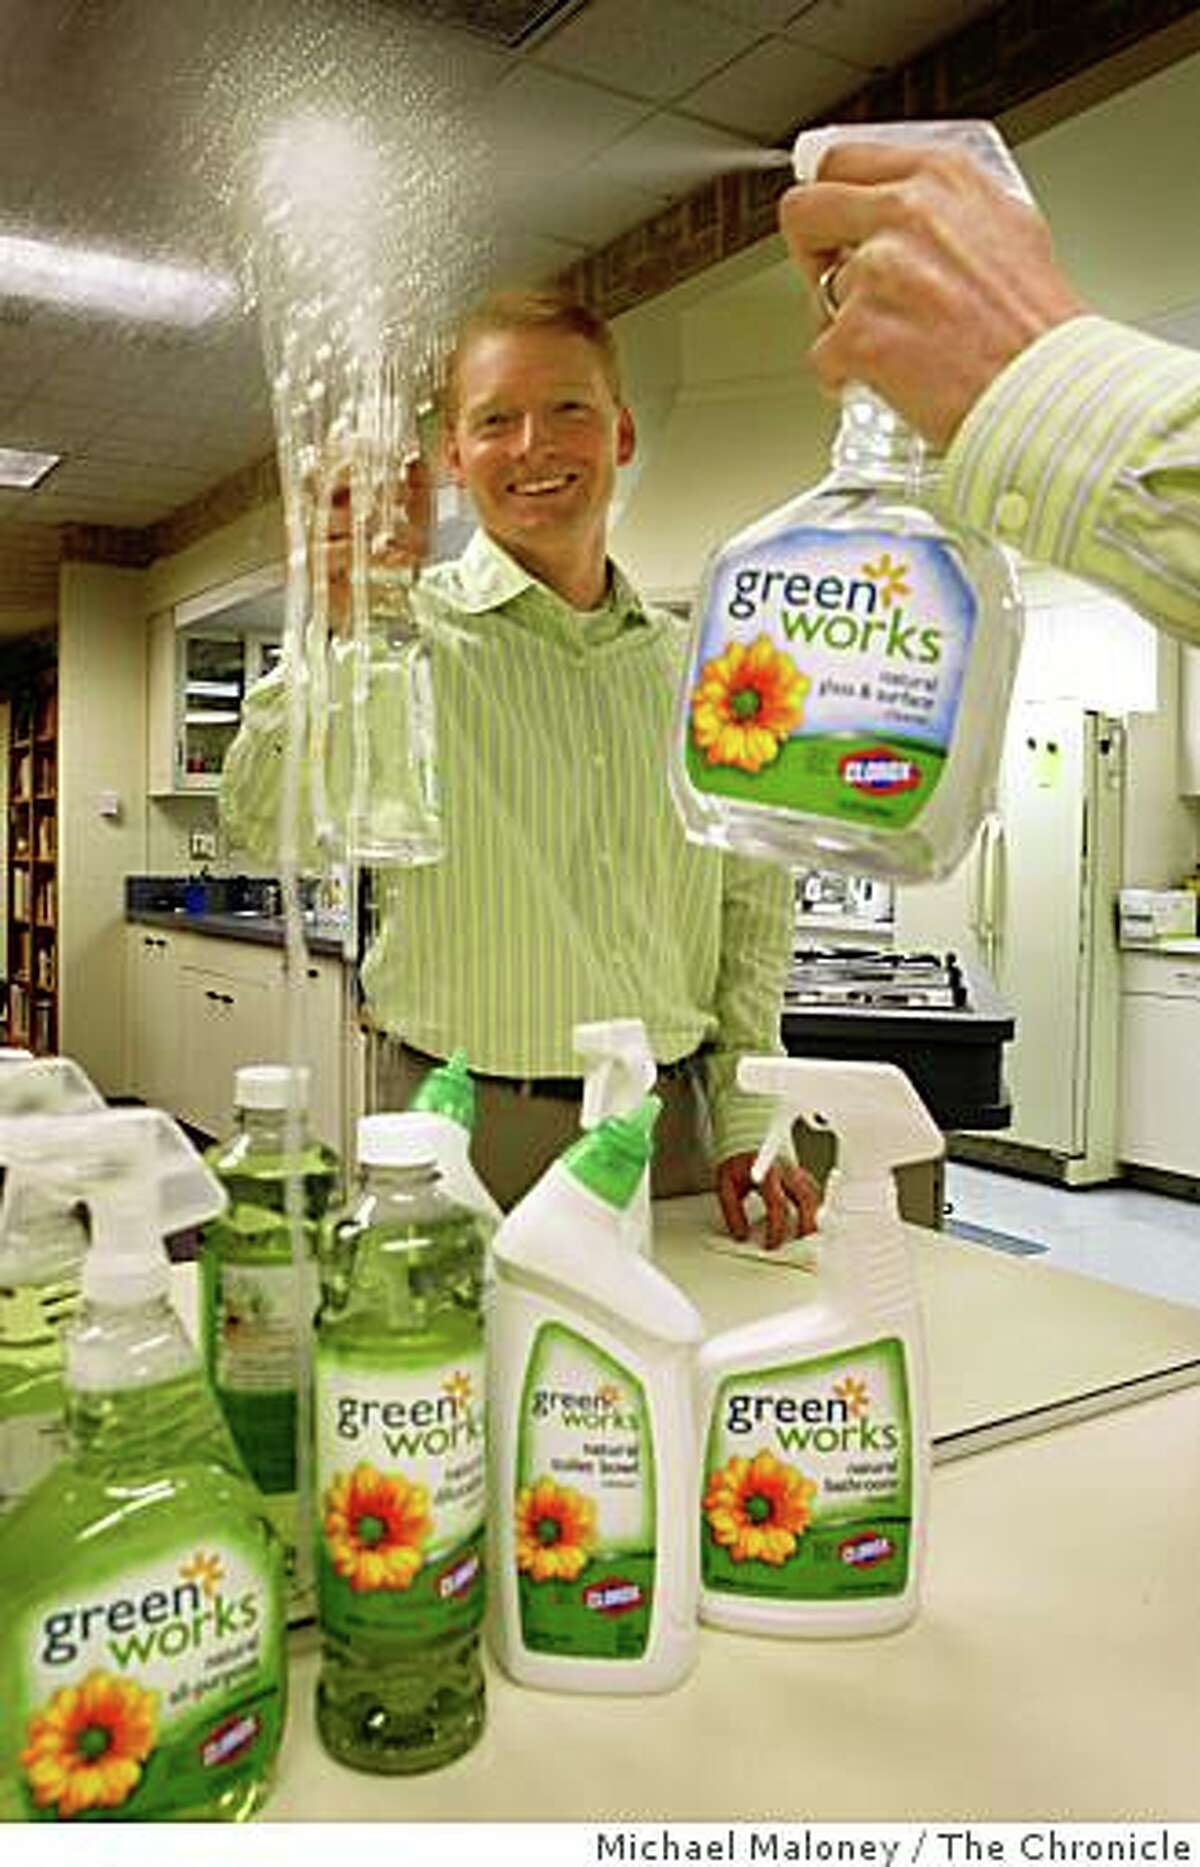 Matt Kohler, brand manager for the Green Works line of products at Clorox demonstrates one of the Green Works products in the Clorox test kitchen in Pleasanton, CA on Thursday, January 1, 2008. Clorox has introduced a line of environmentally-friendly household cleaning products called Green Works, made with natural, biodegradable, non-petroleum-based ingredients. Photo by Michael Maloney / The Chronicle